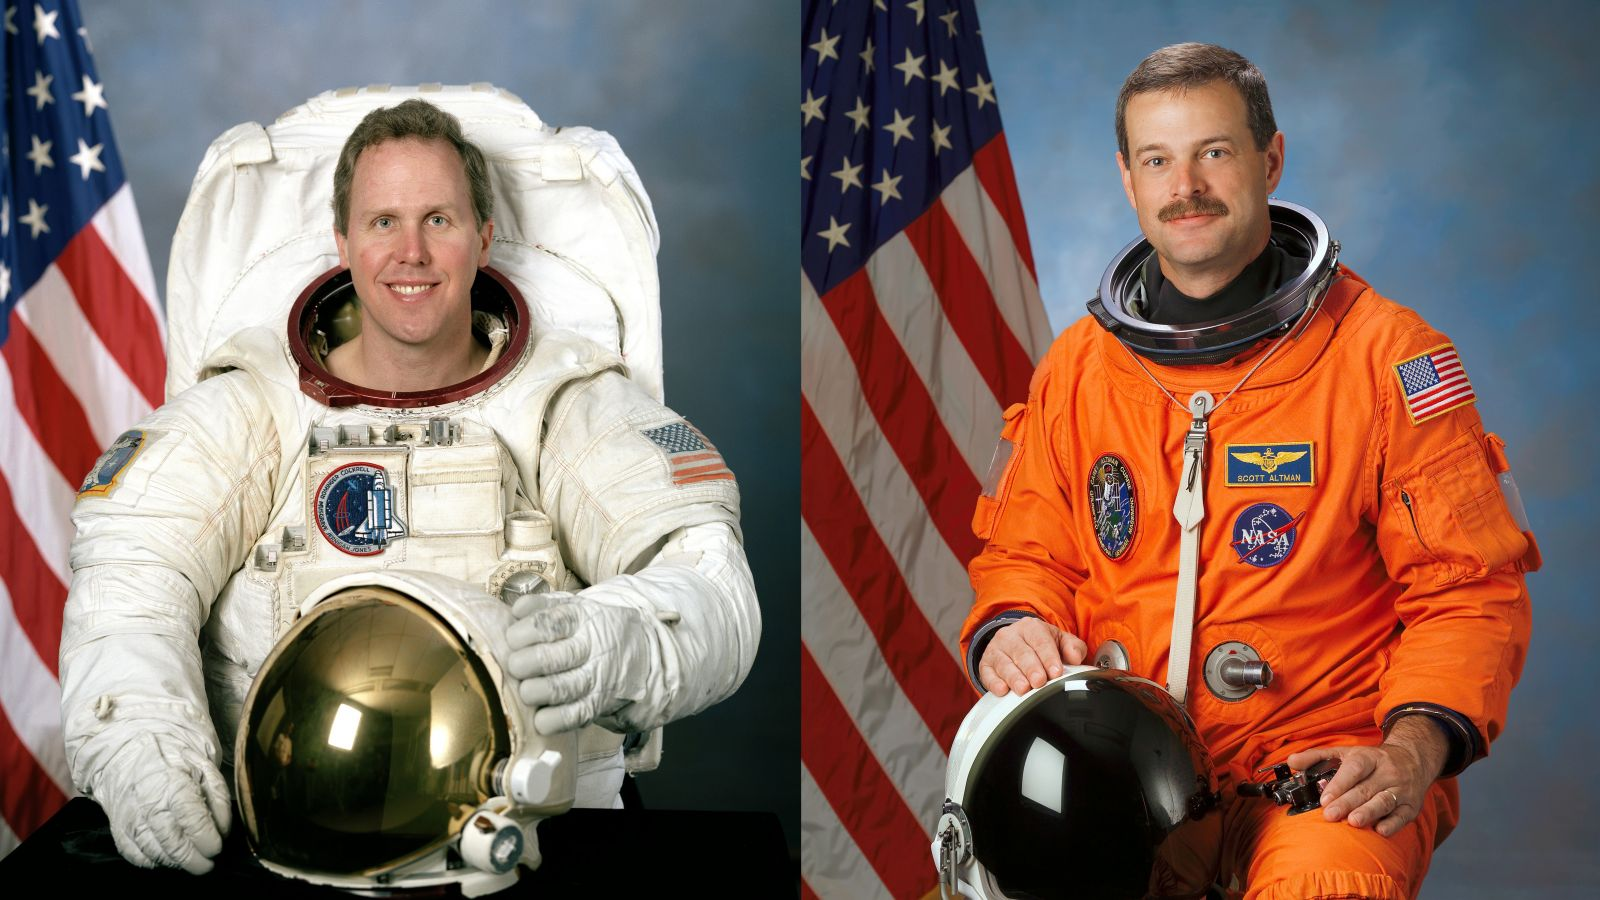 Space Shuttle Mission Specialist Thomas Jones, left, and Space Shuttle Commander Scott Altman. Photo Credit: NASA